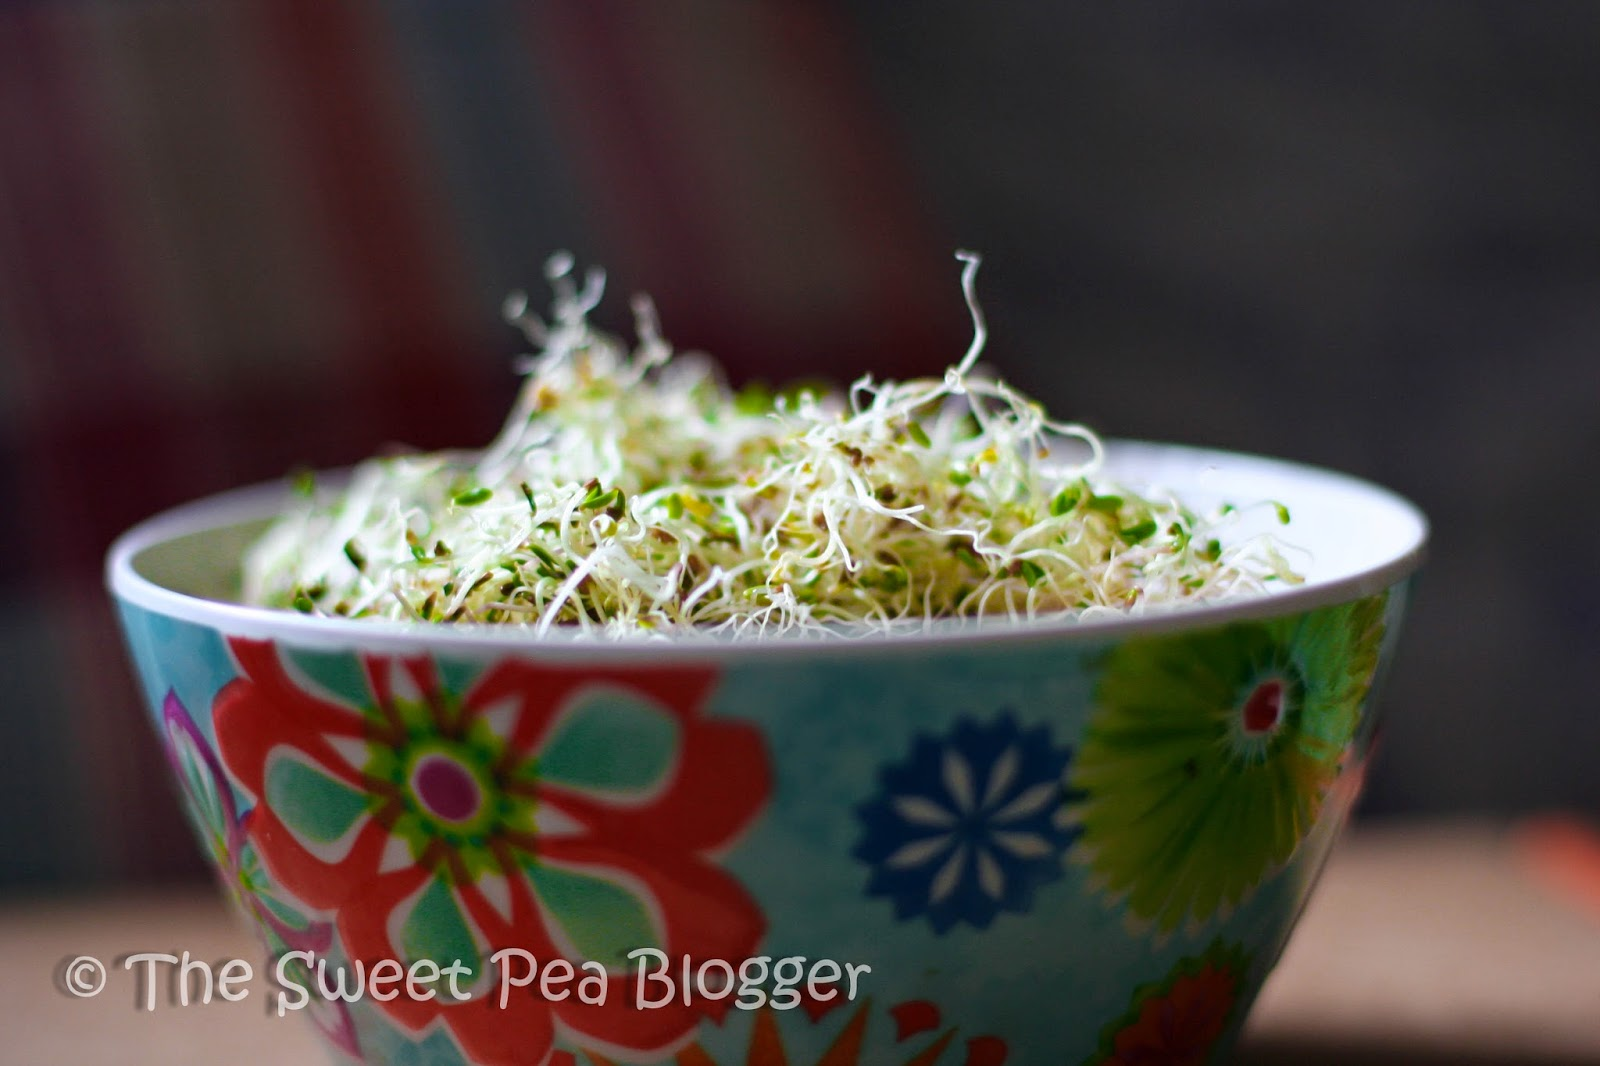 A DIY Guide to Growing Alfalfa Sprouts